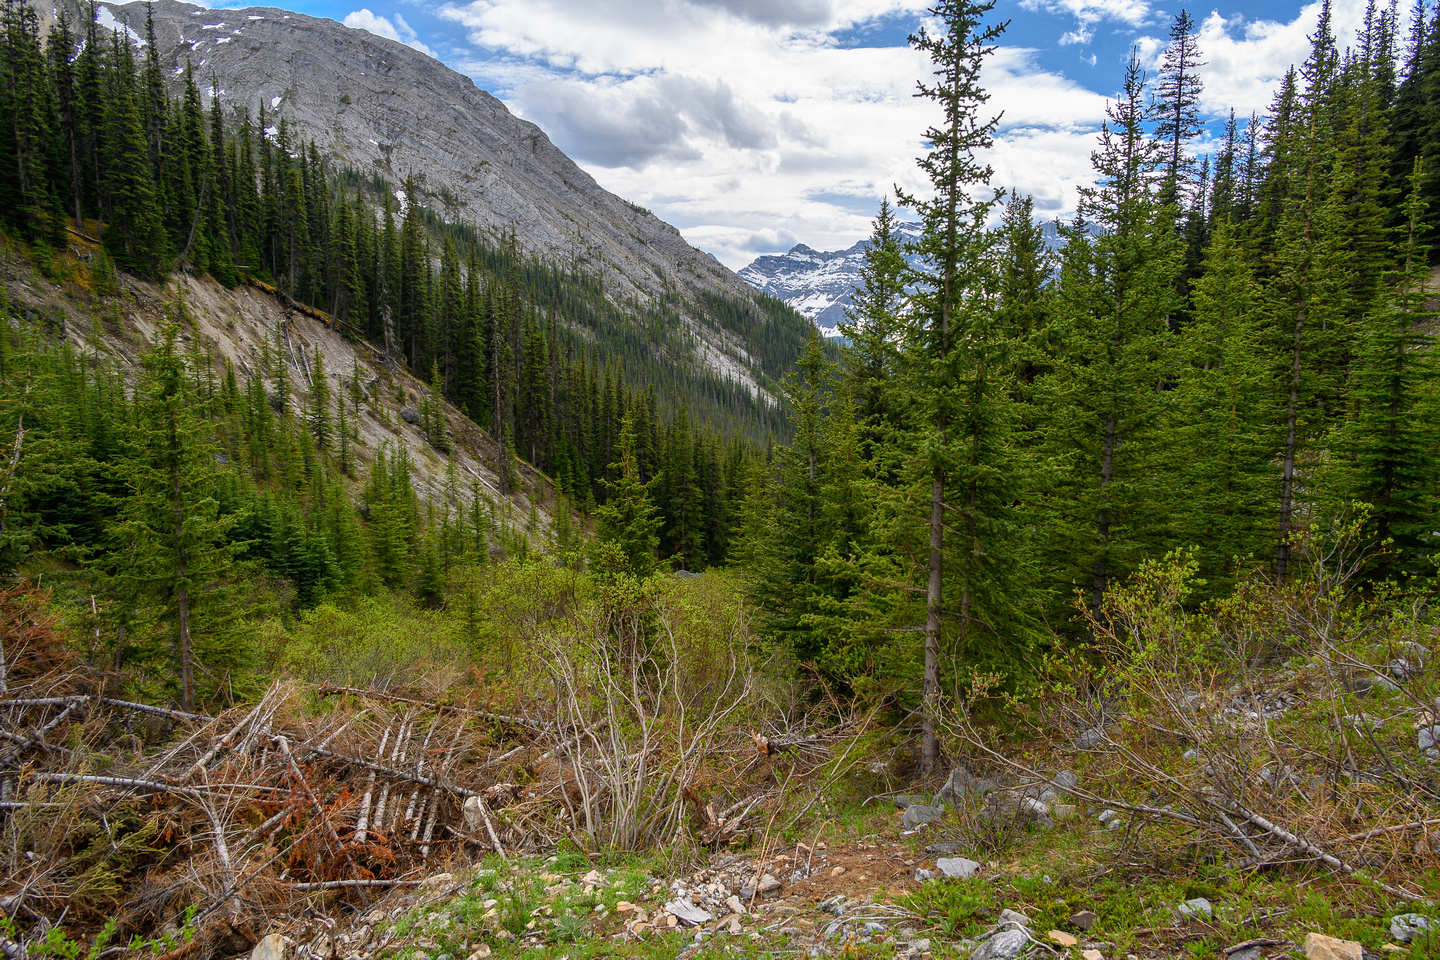 Choked up valley with avalanche debris.